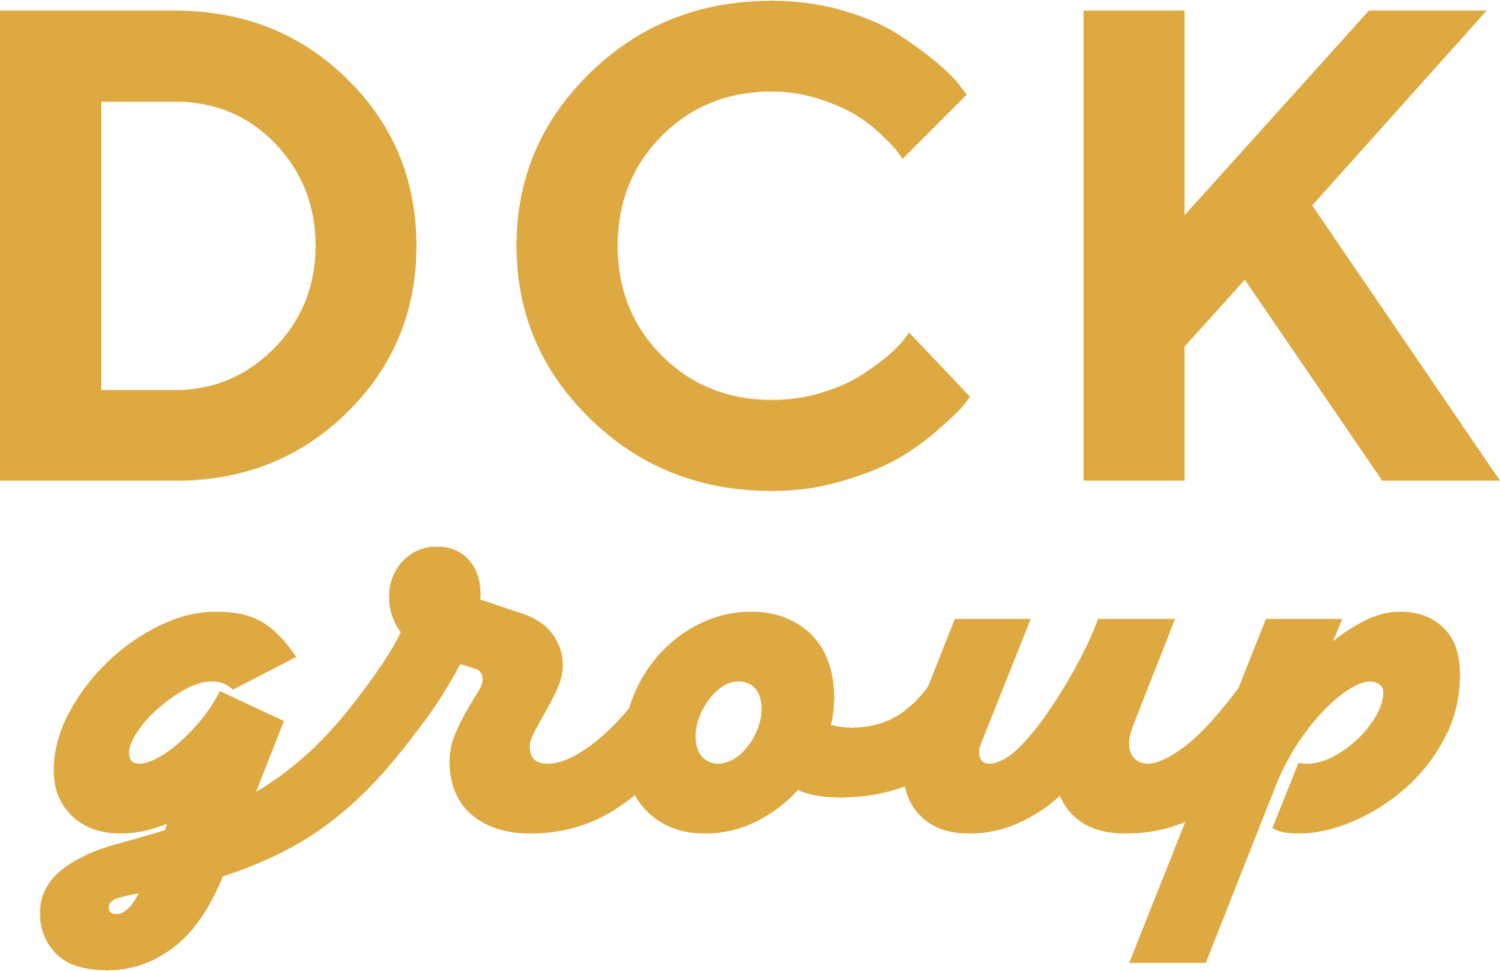 DCK GROUP